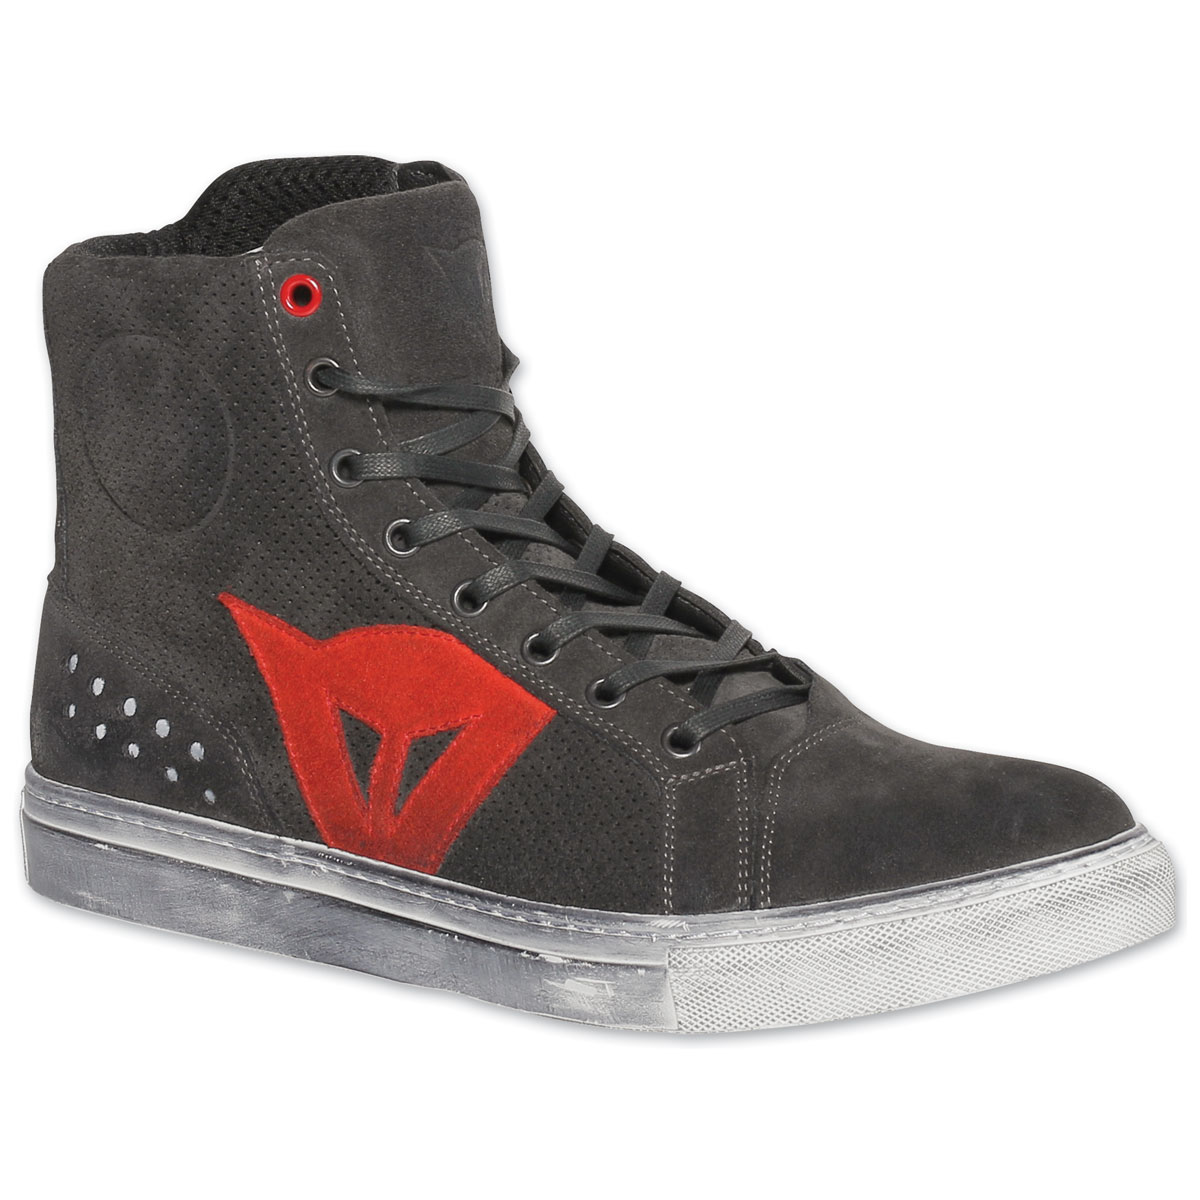 Dainese Men's Street Biker Air Carbon/Dark Red Shoes